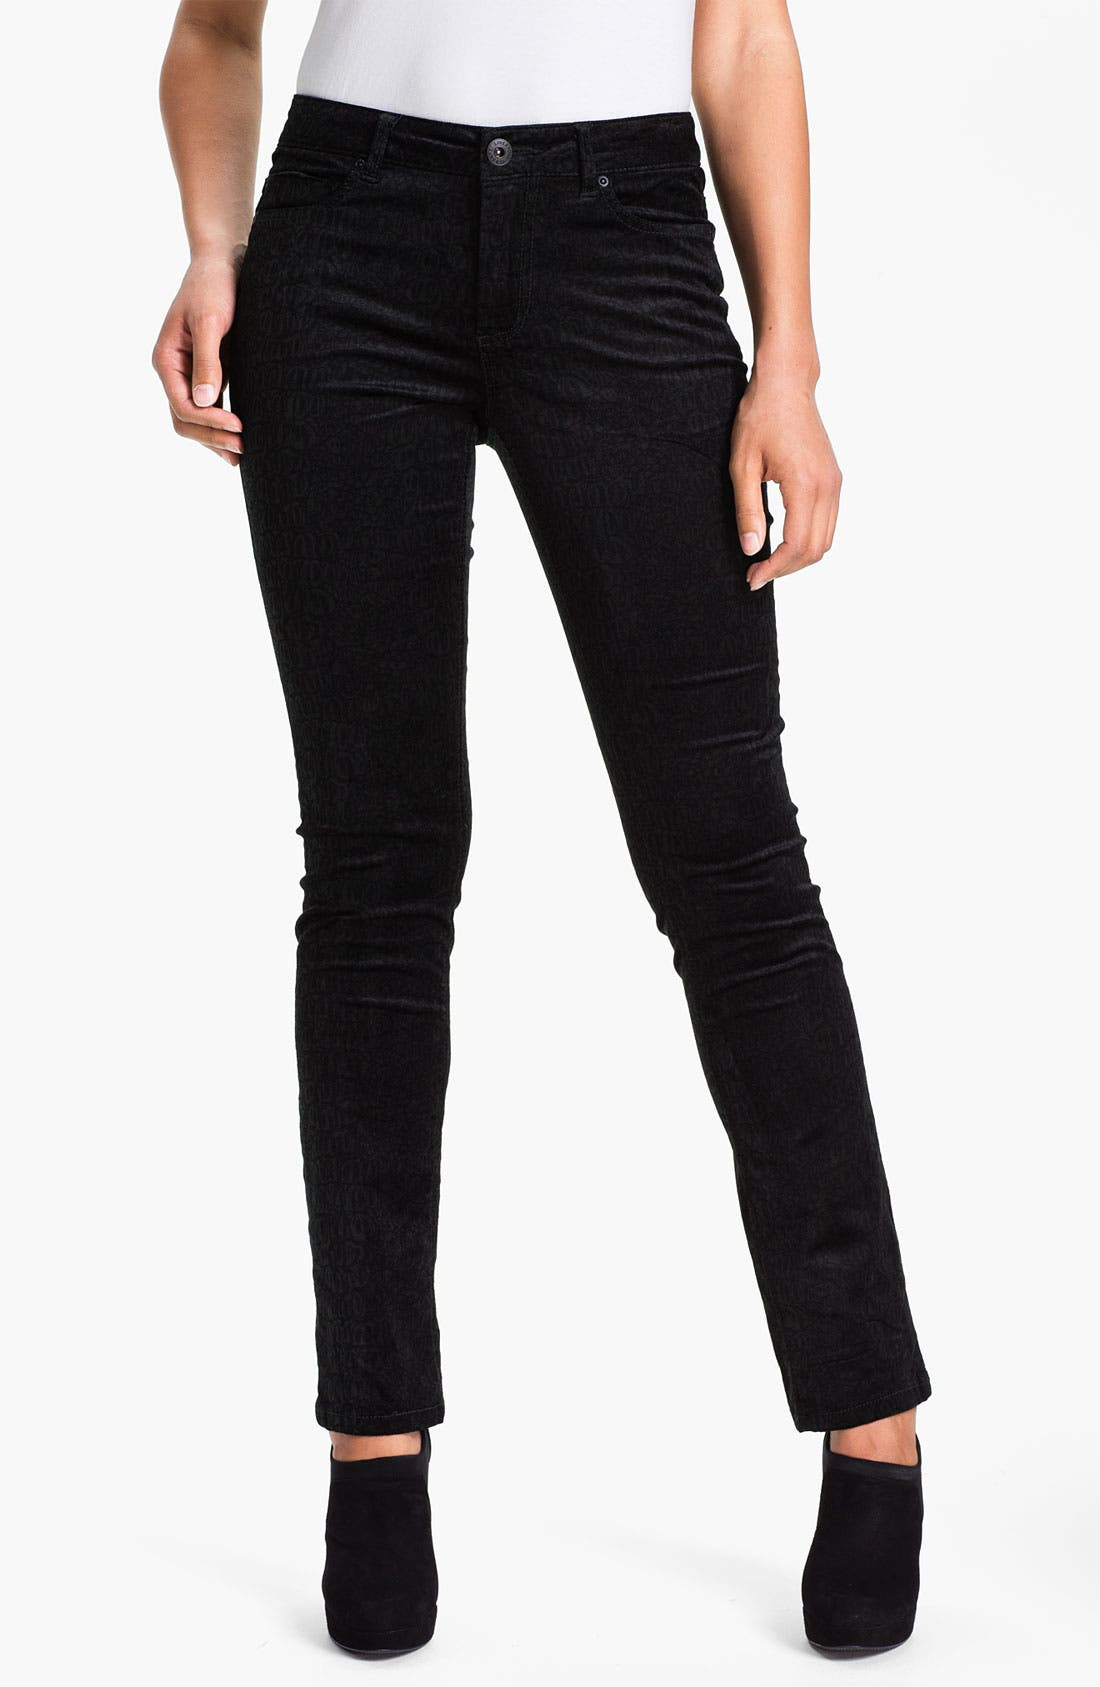 Main Image - Liverpool Jeans Company 'Sadie' - Cheetah' Straight Leg Velveteen Jeans